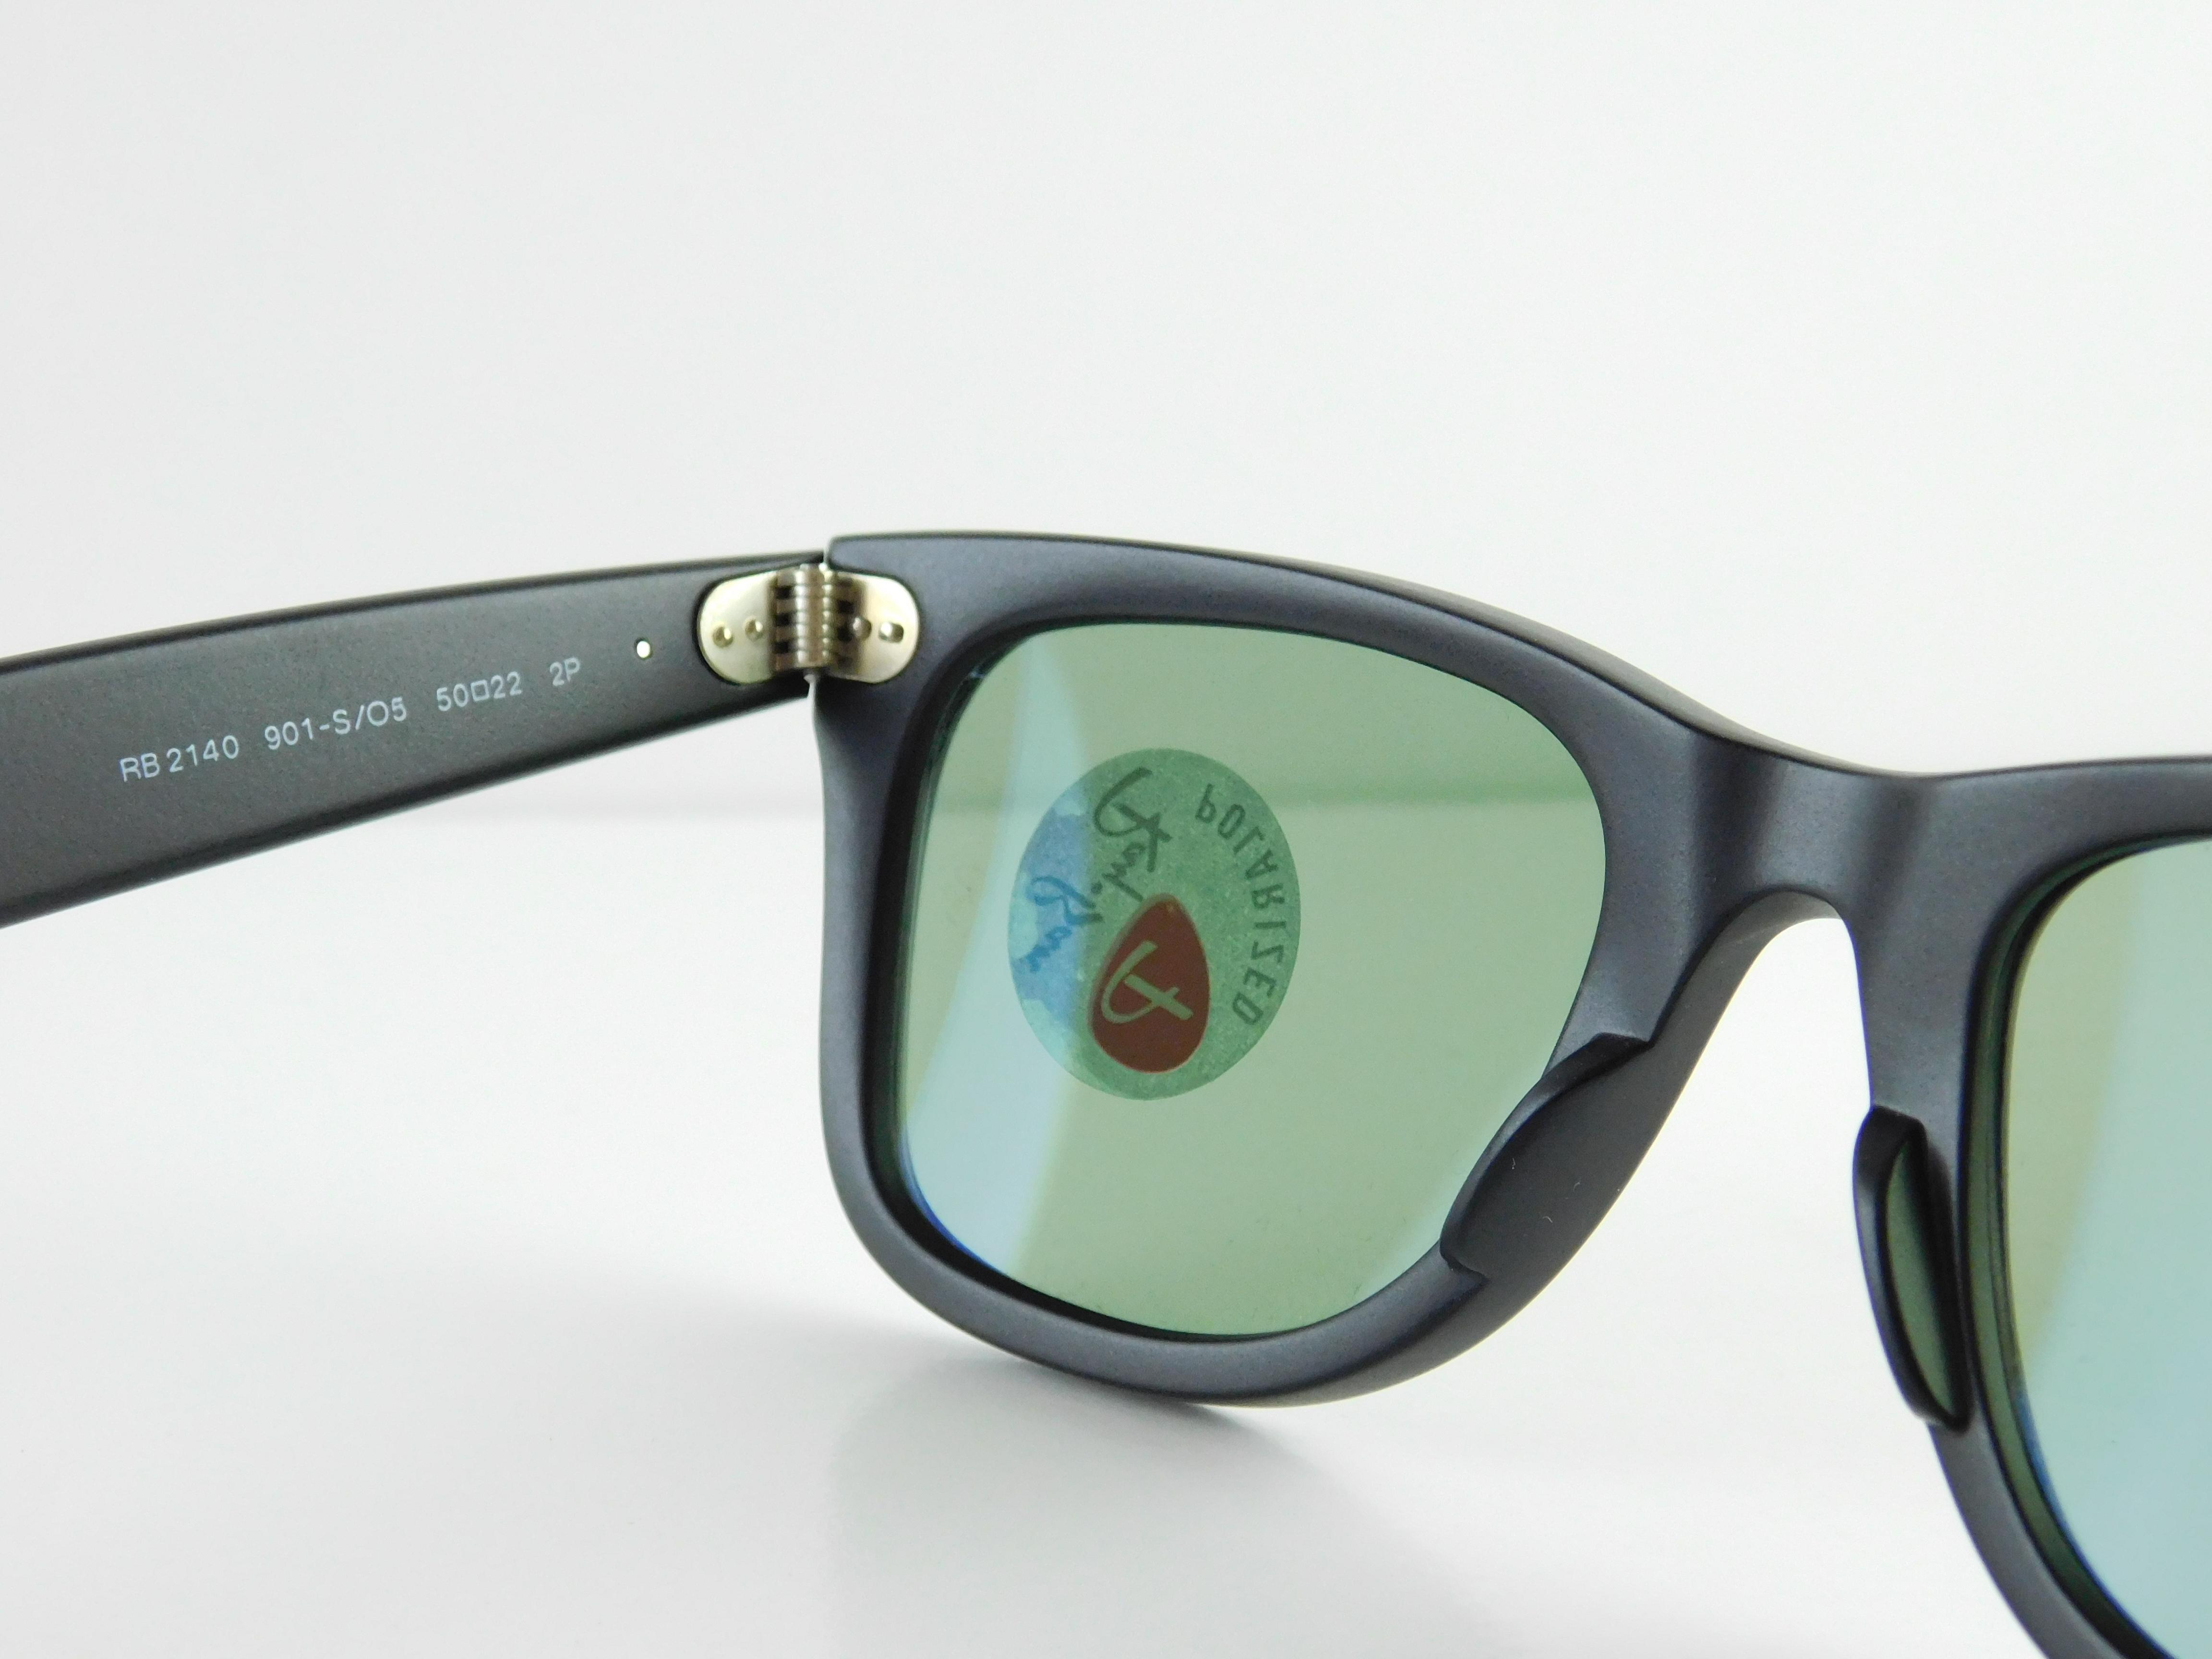 ray ban made in italy dz8e  Ray Ban Sunglasses Made In Italy